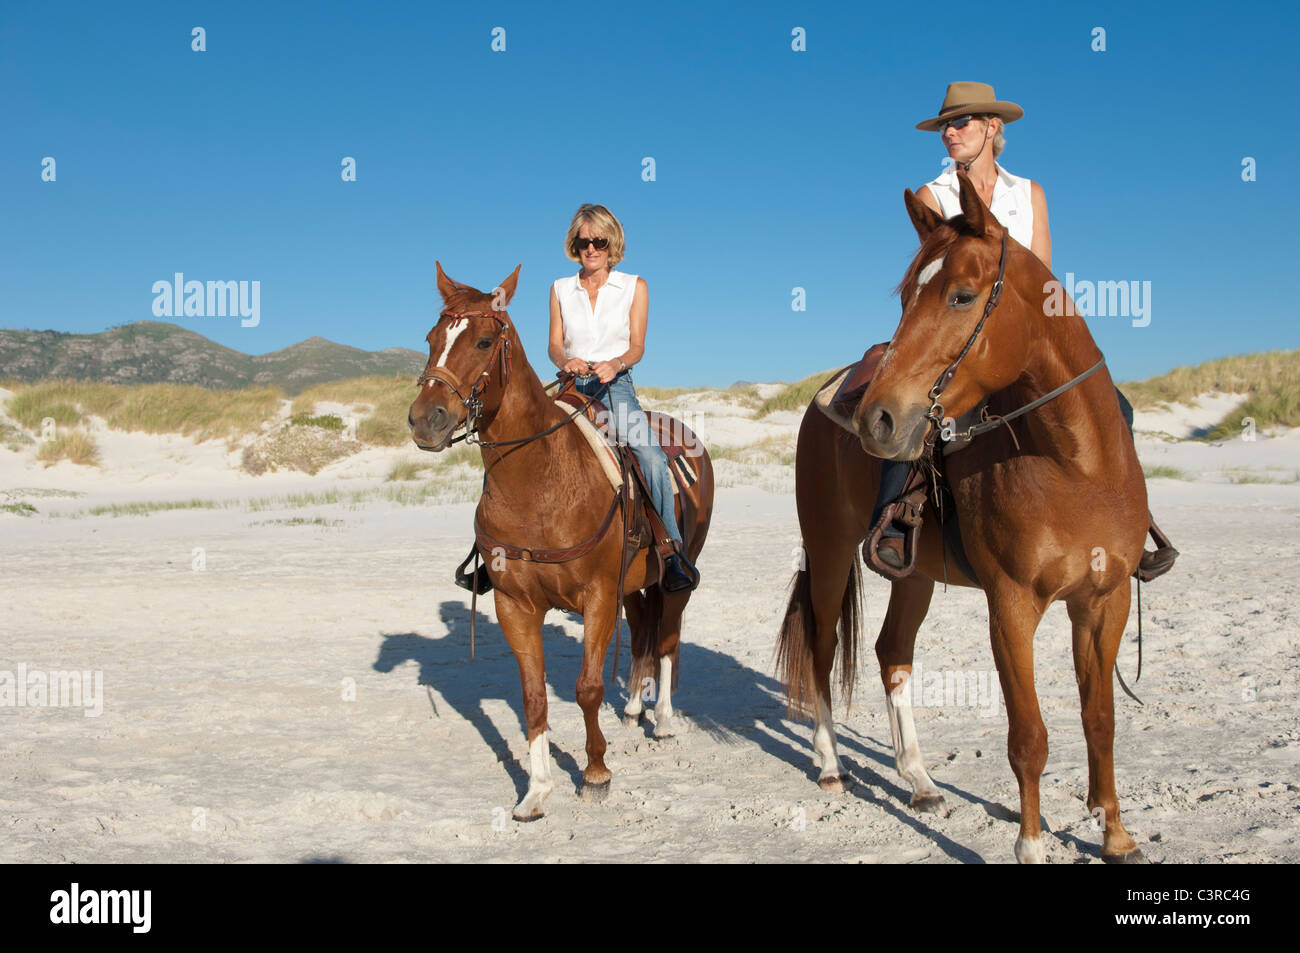 2 people riding horses on the beach stock photo royalty free 2 people riding horses on the beach sciox Choice Image